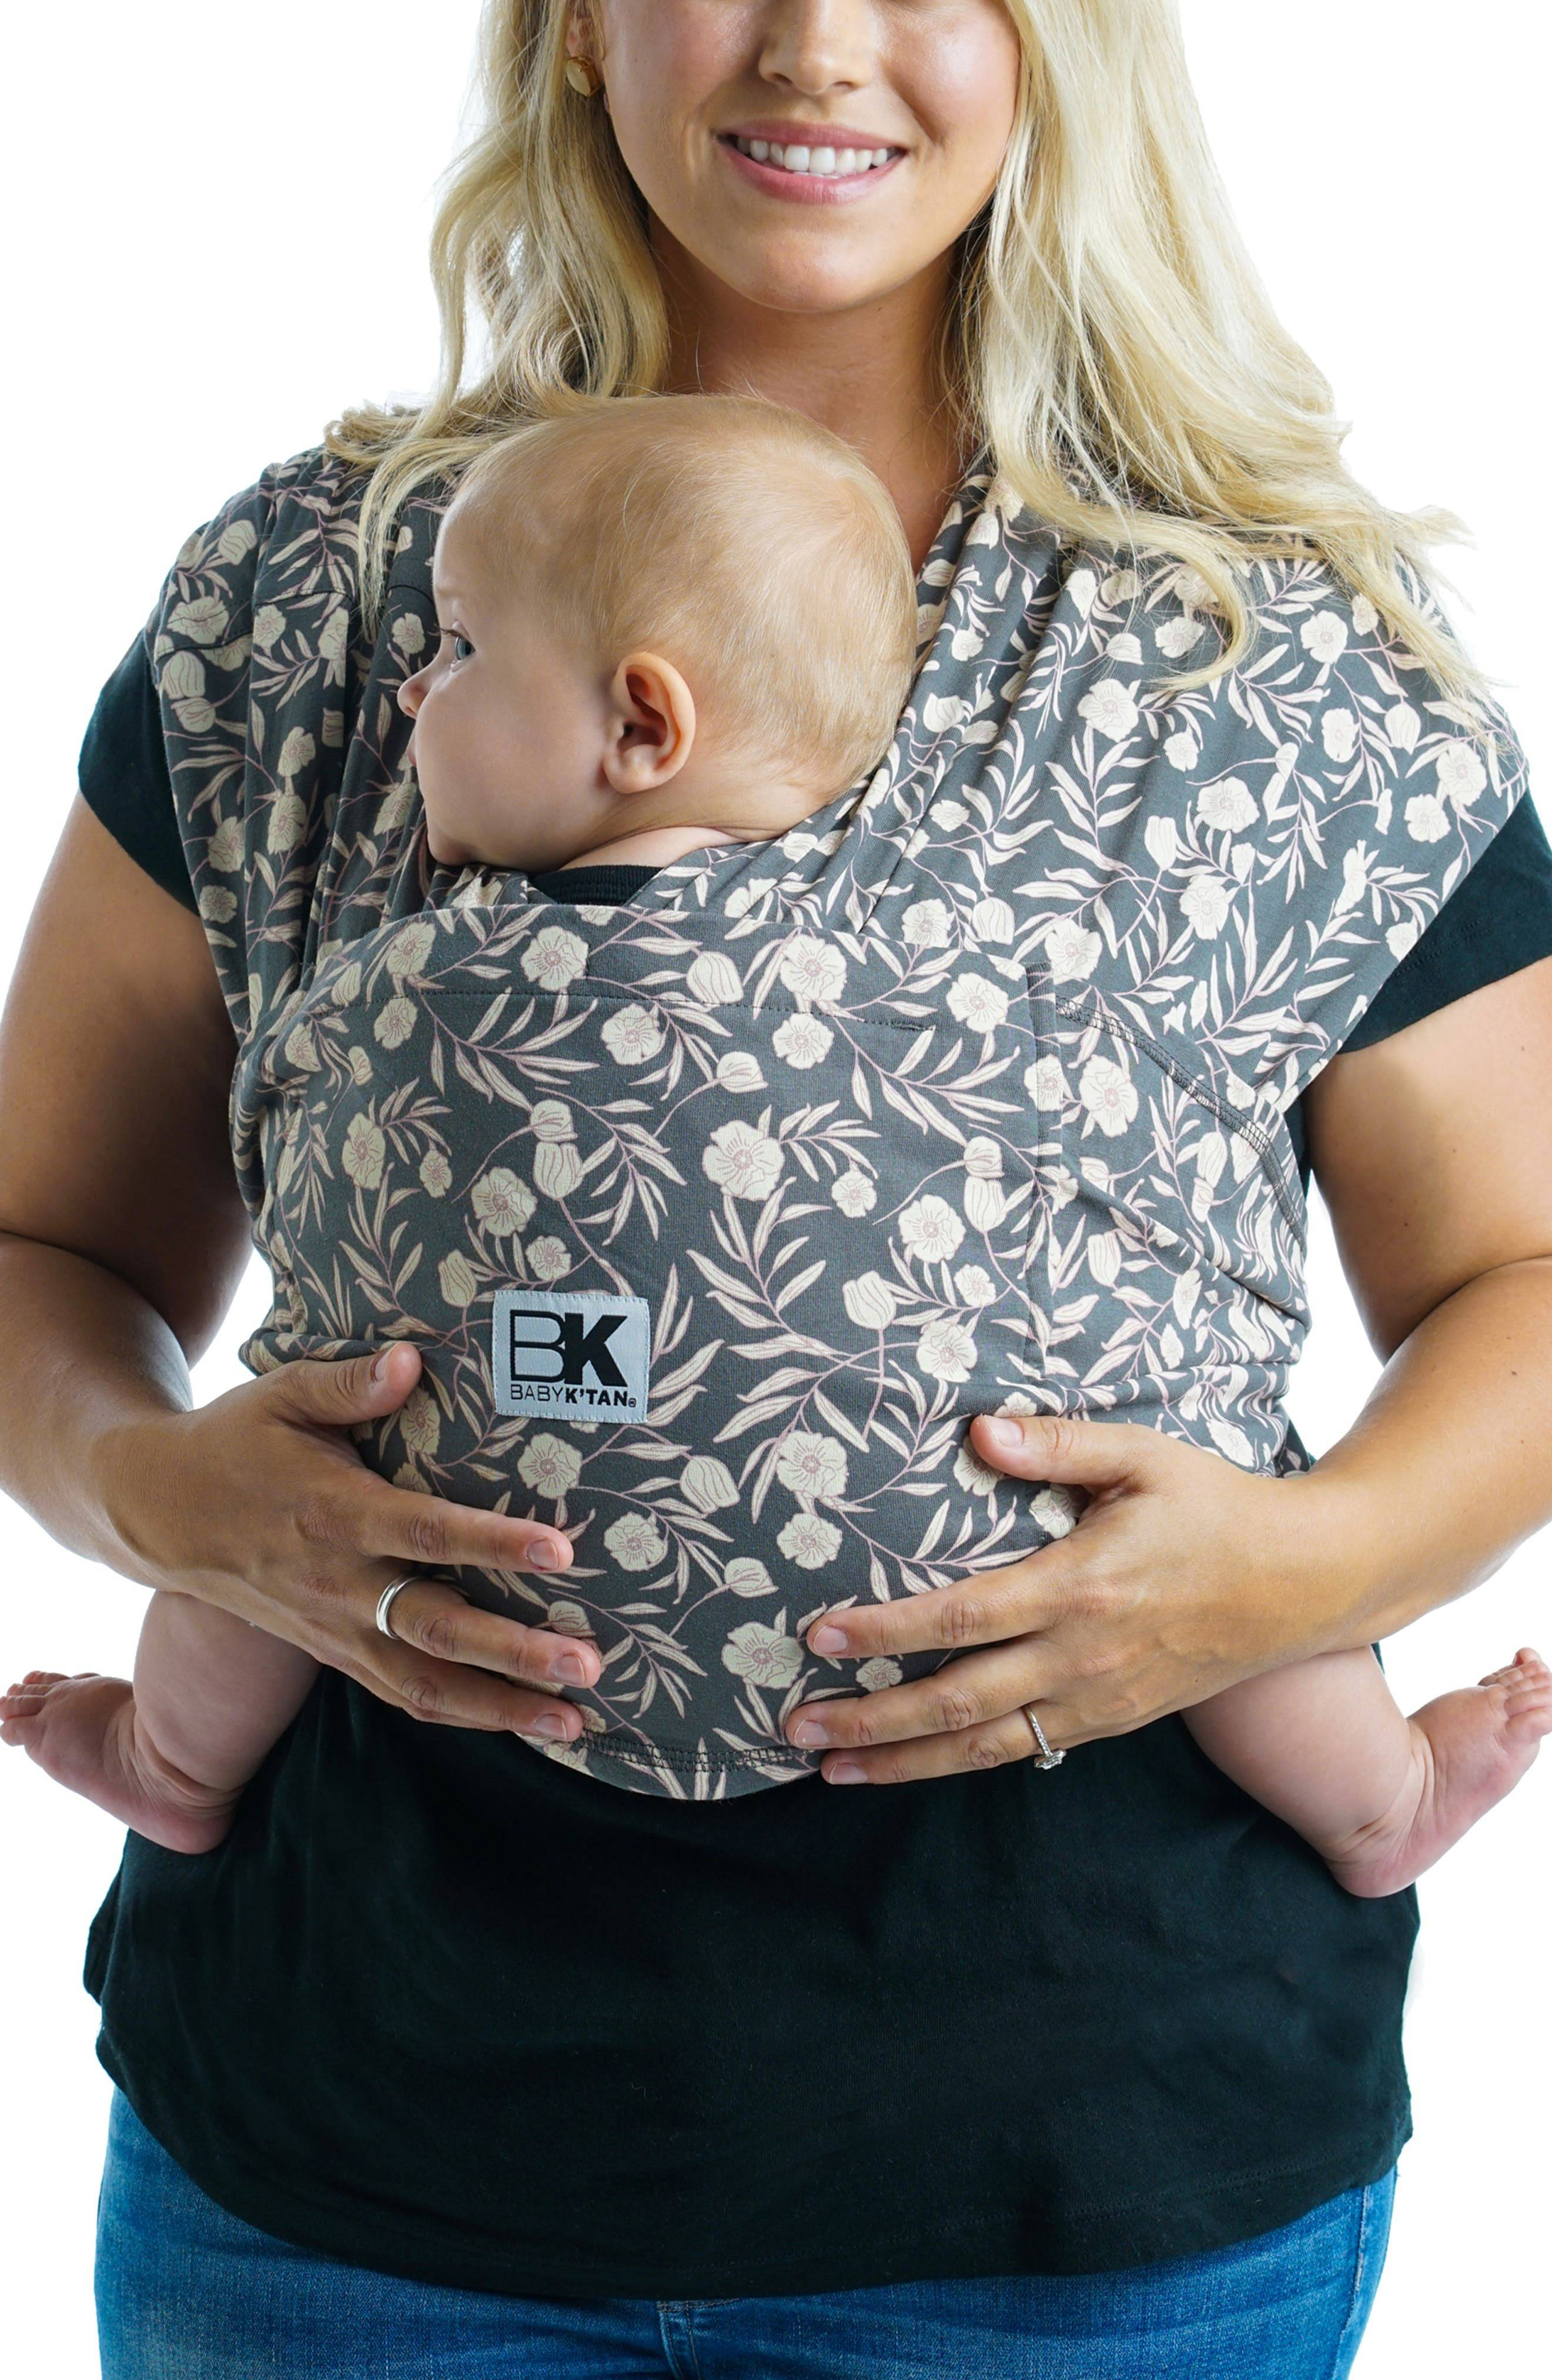 Baby K'Tan Infant Baby K'Tan Original Floral Garden Baby Carrier, Size Small - Grey